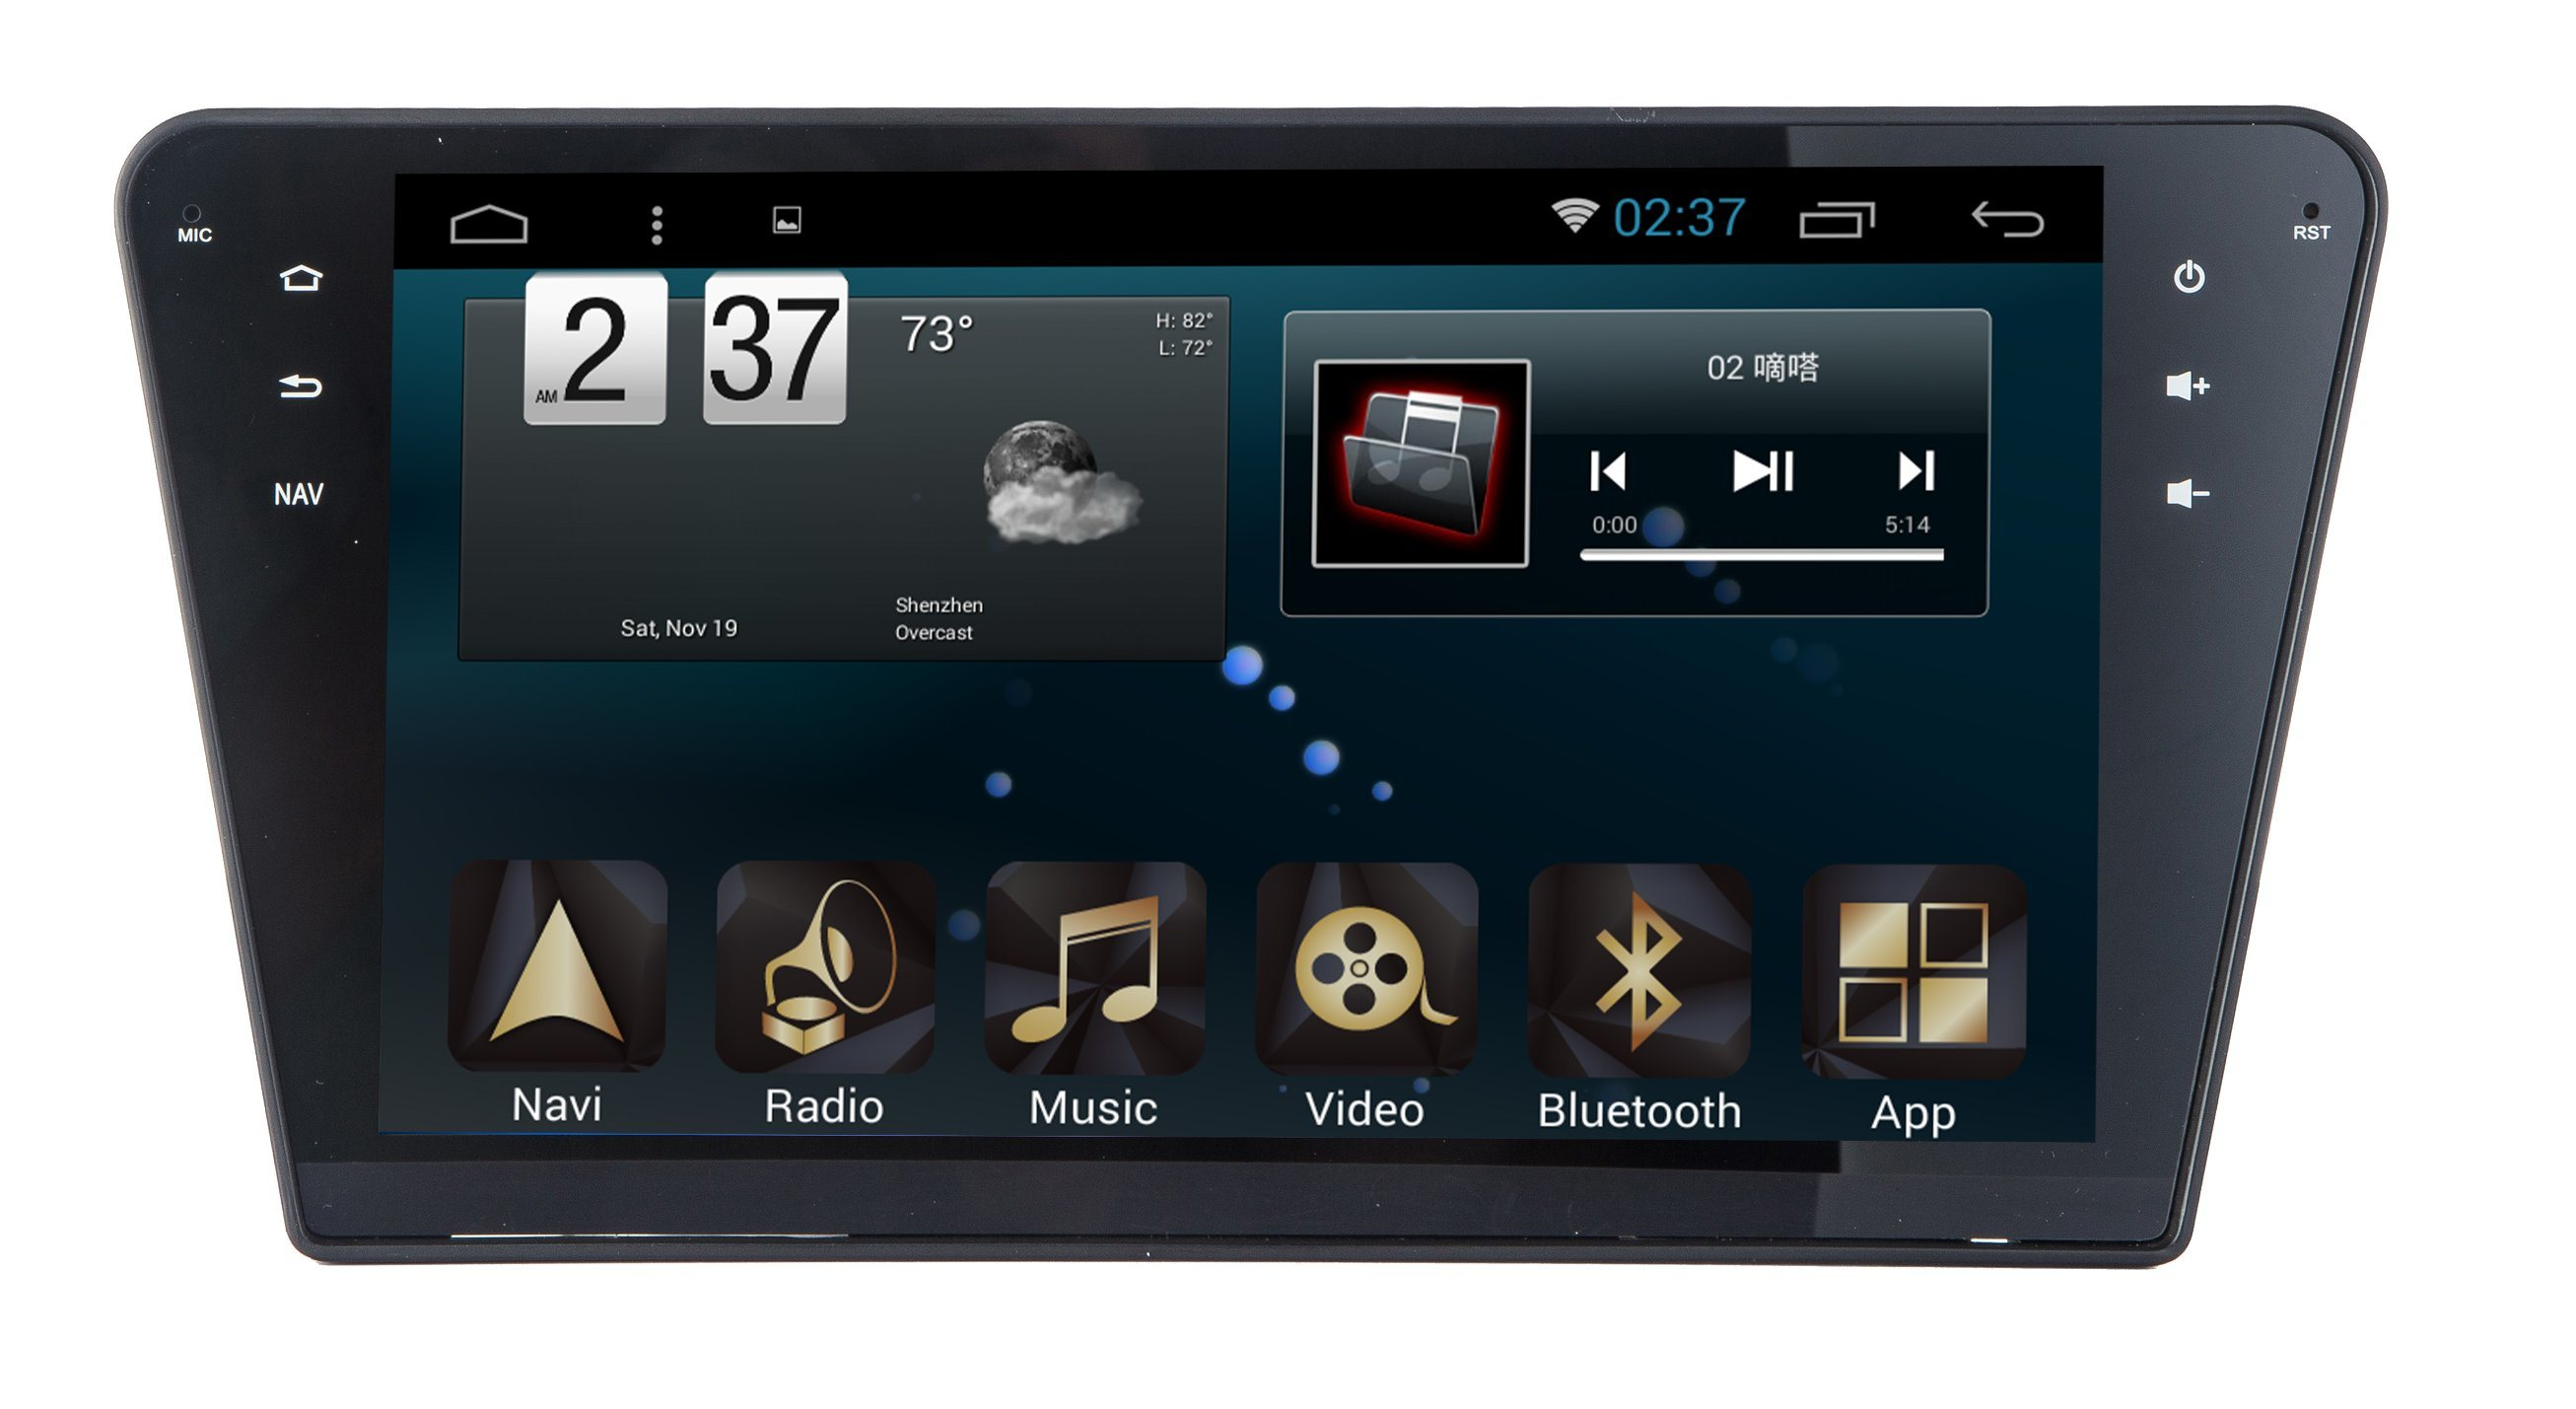 New Ui Android 6.0 Car Player for Peugeot 408 2014 with Car Navigation